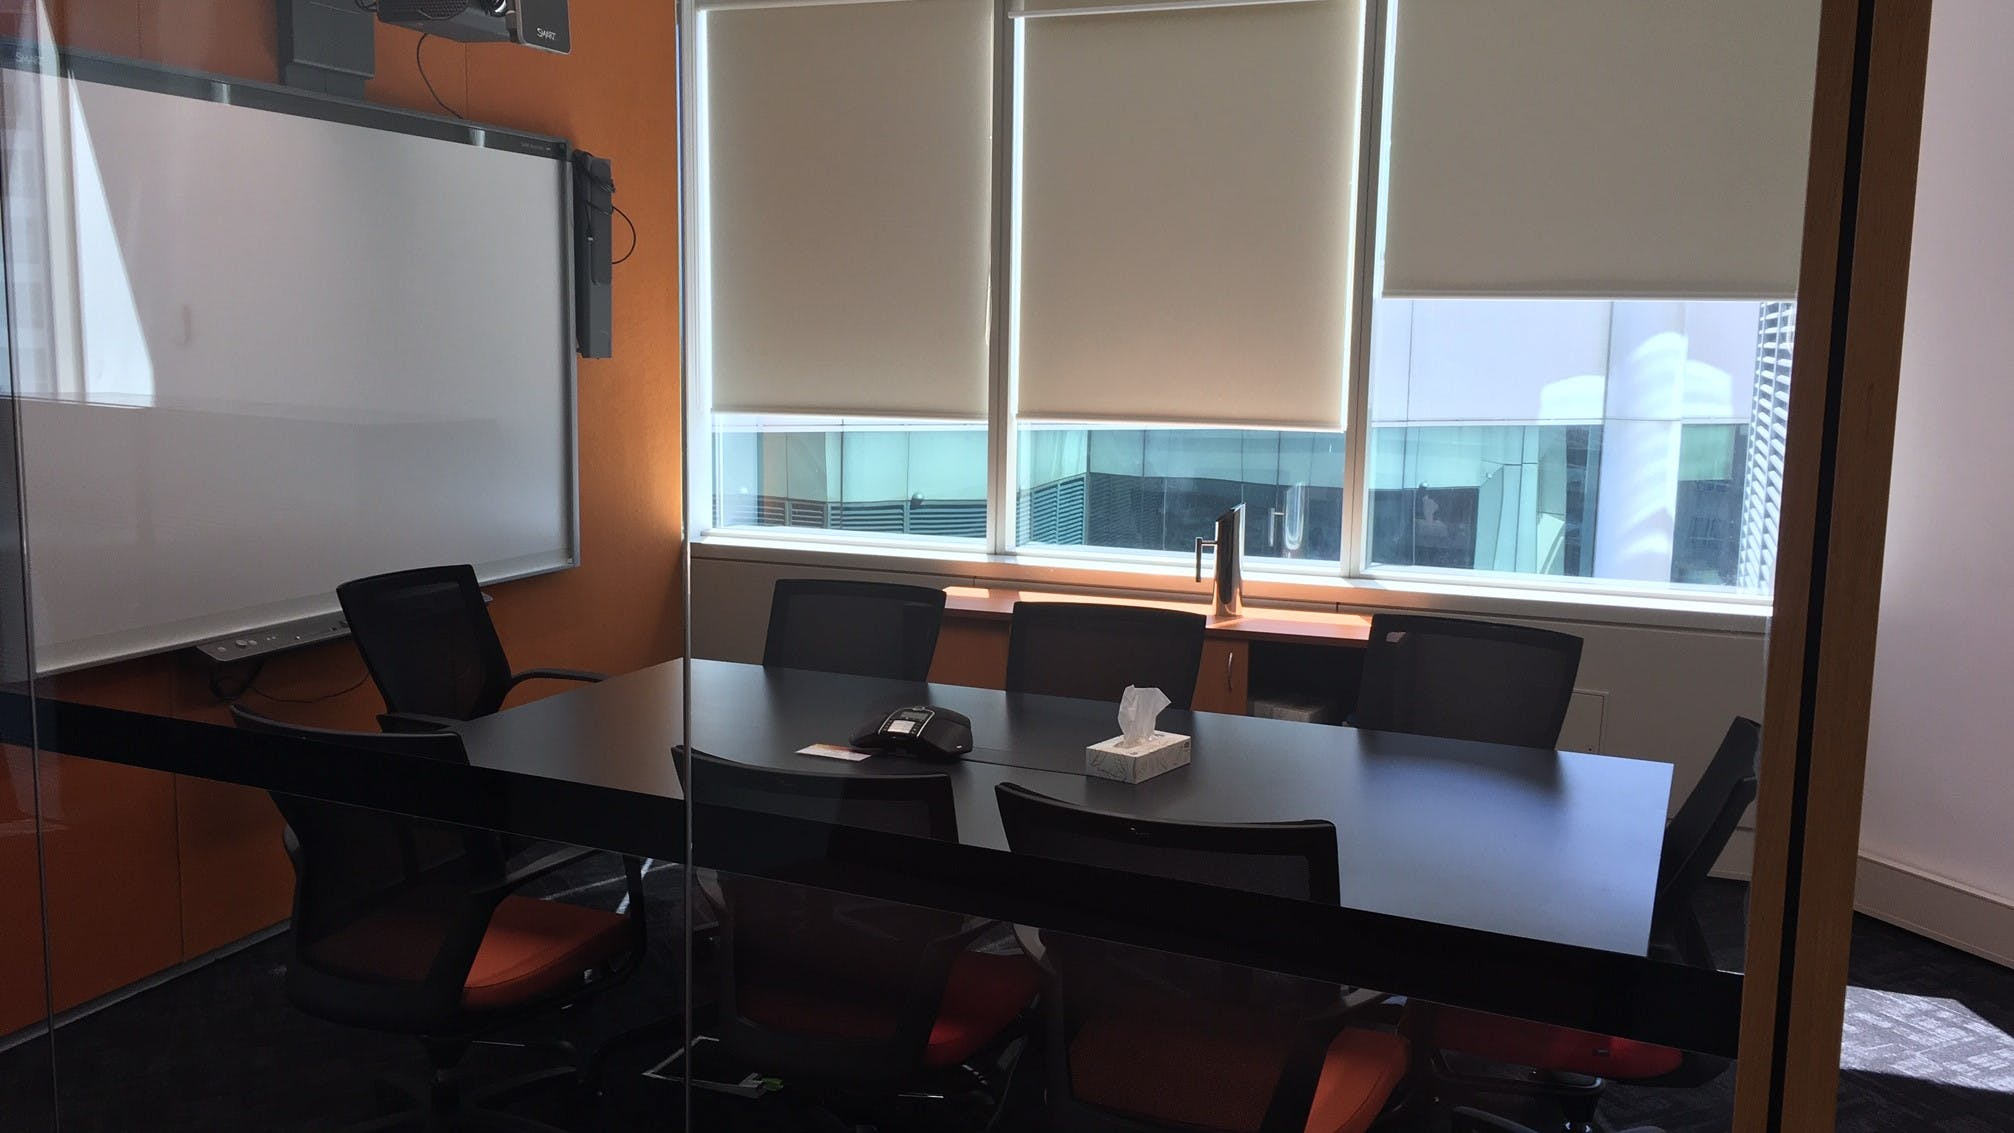 Boardroom SOI Chatswood, meeting room at Serviced Offices International (SOI) Chatswood, image 1